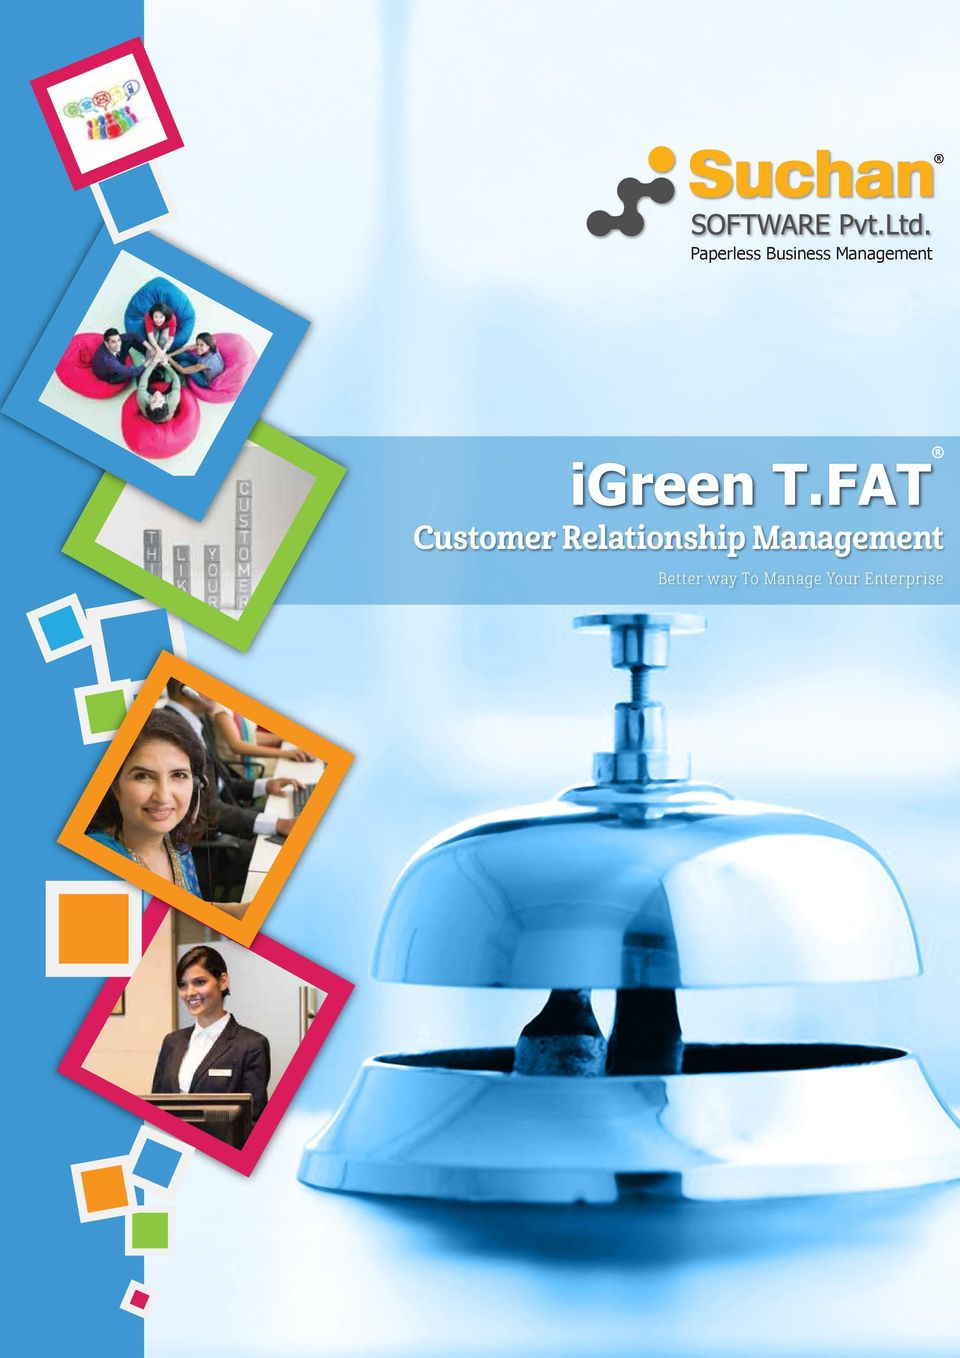 FAT Customer Relationship